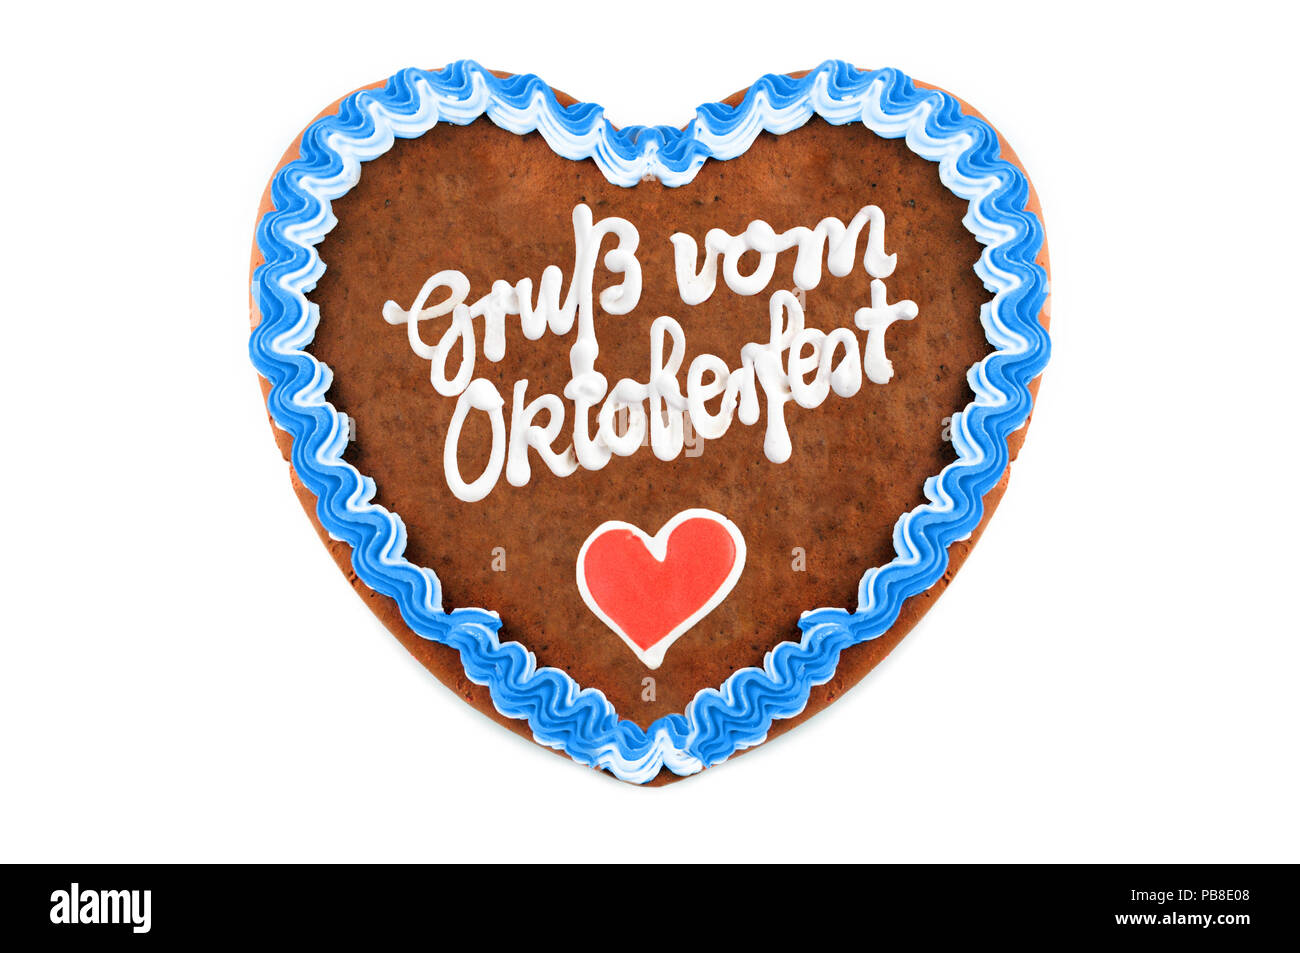 Oktoberfest gingerbread heart with german words greetings from oktoberfest gingerbread heart with german words greetings from oktoberfest on white isolated background m4hsunfo